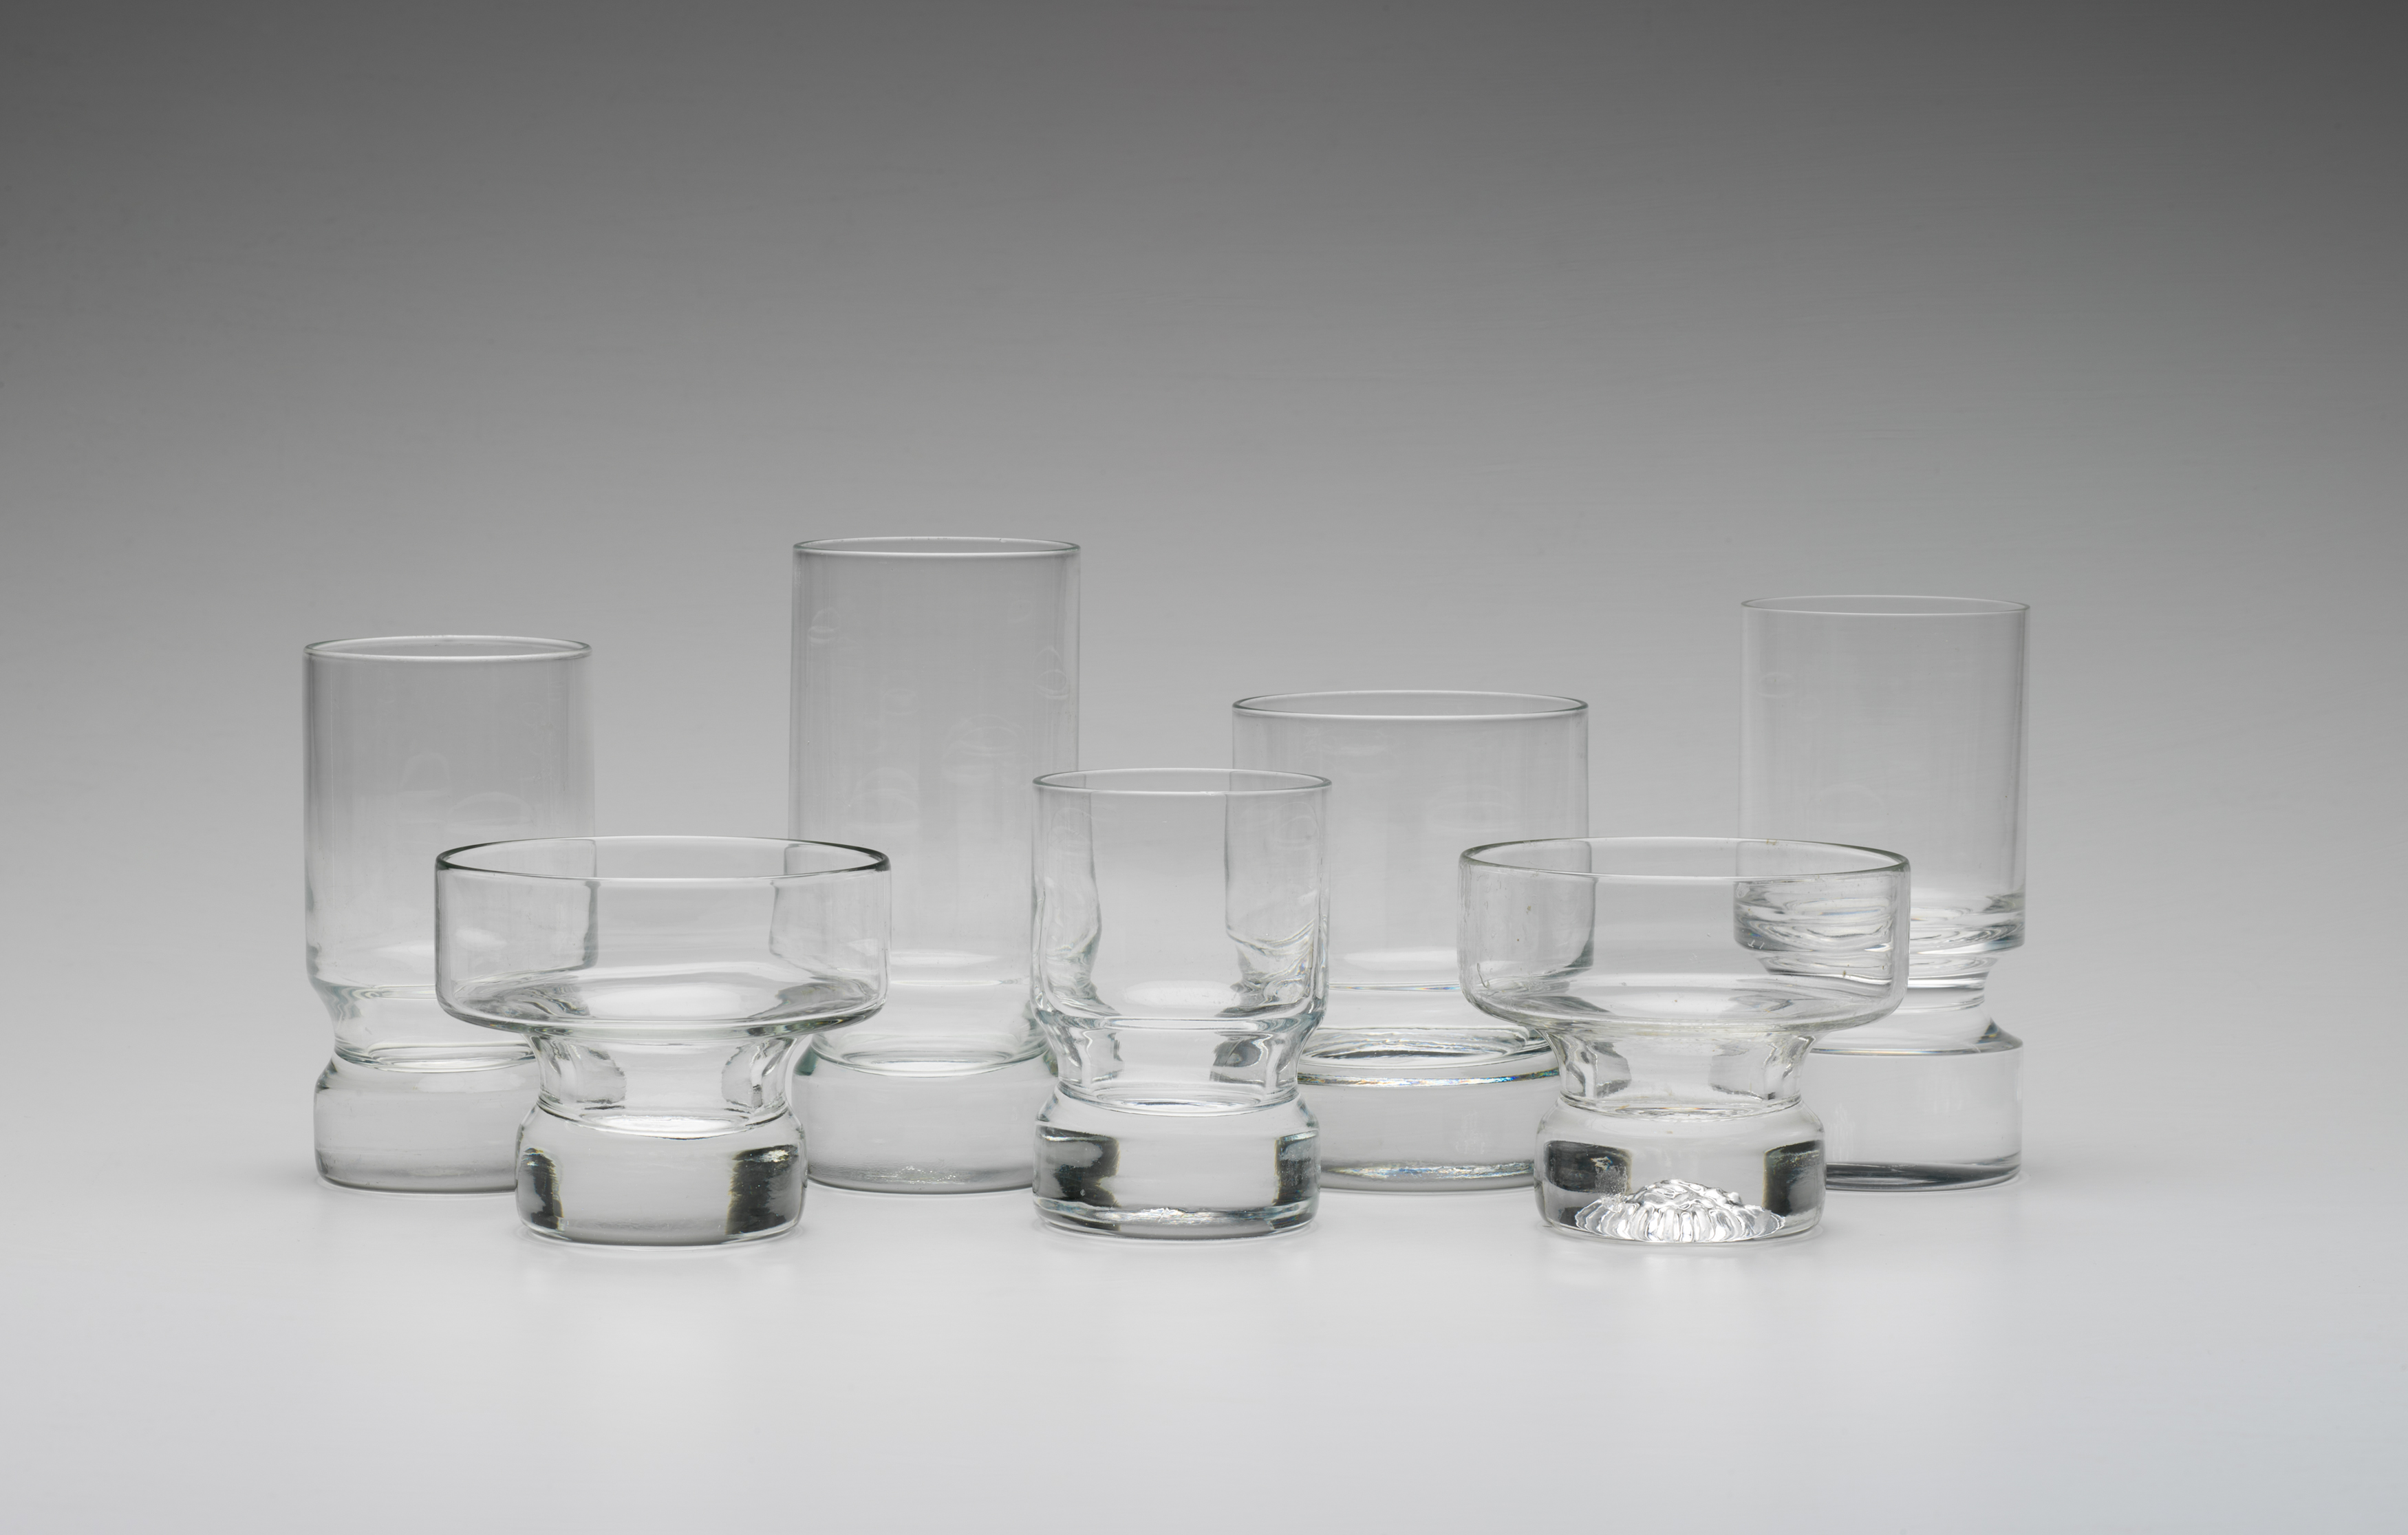 Seven drinking glasses of different shapes and sizes on a grey background.